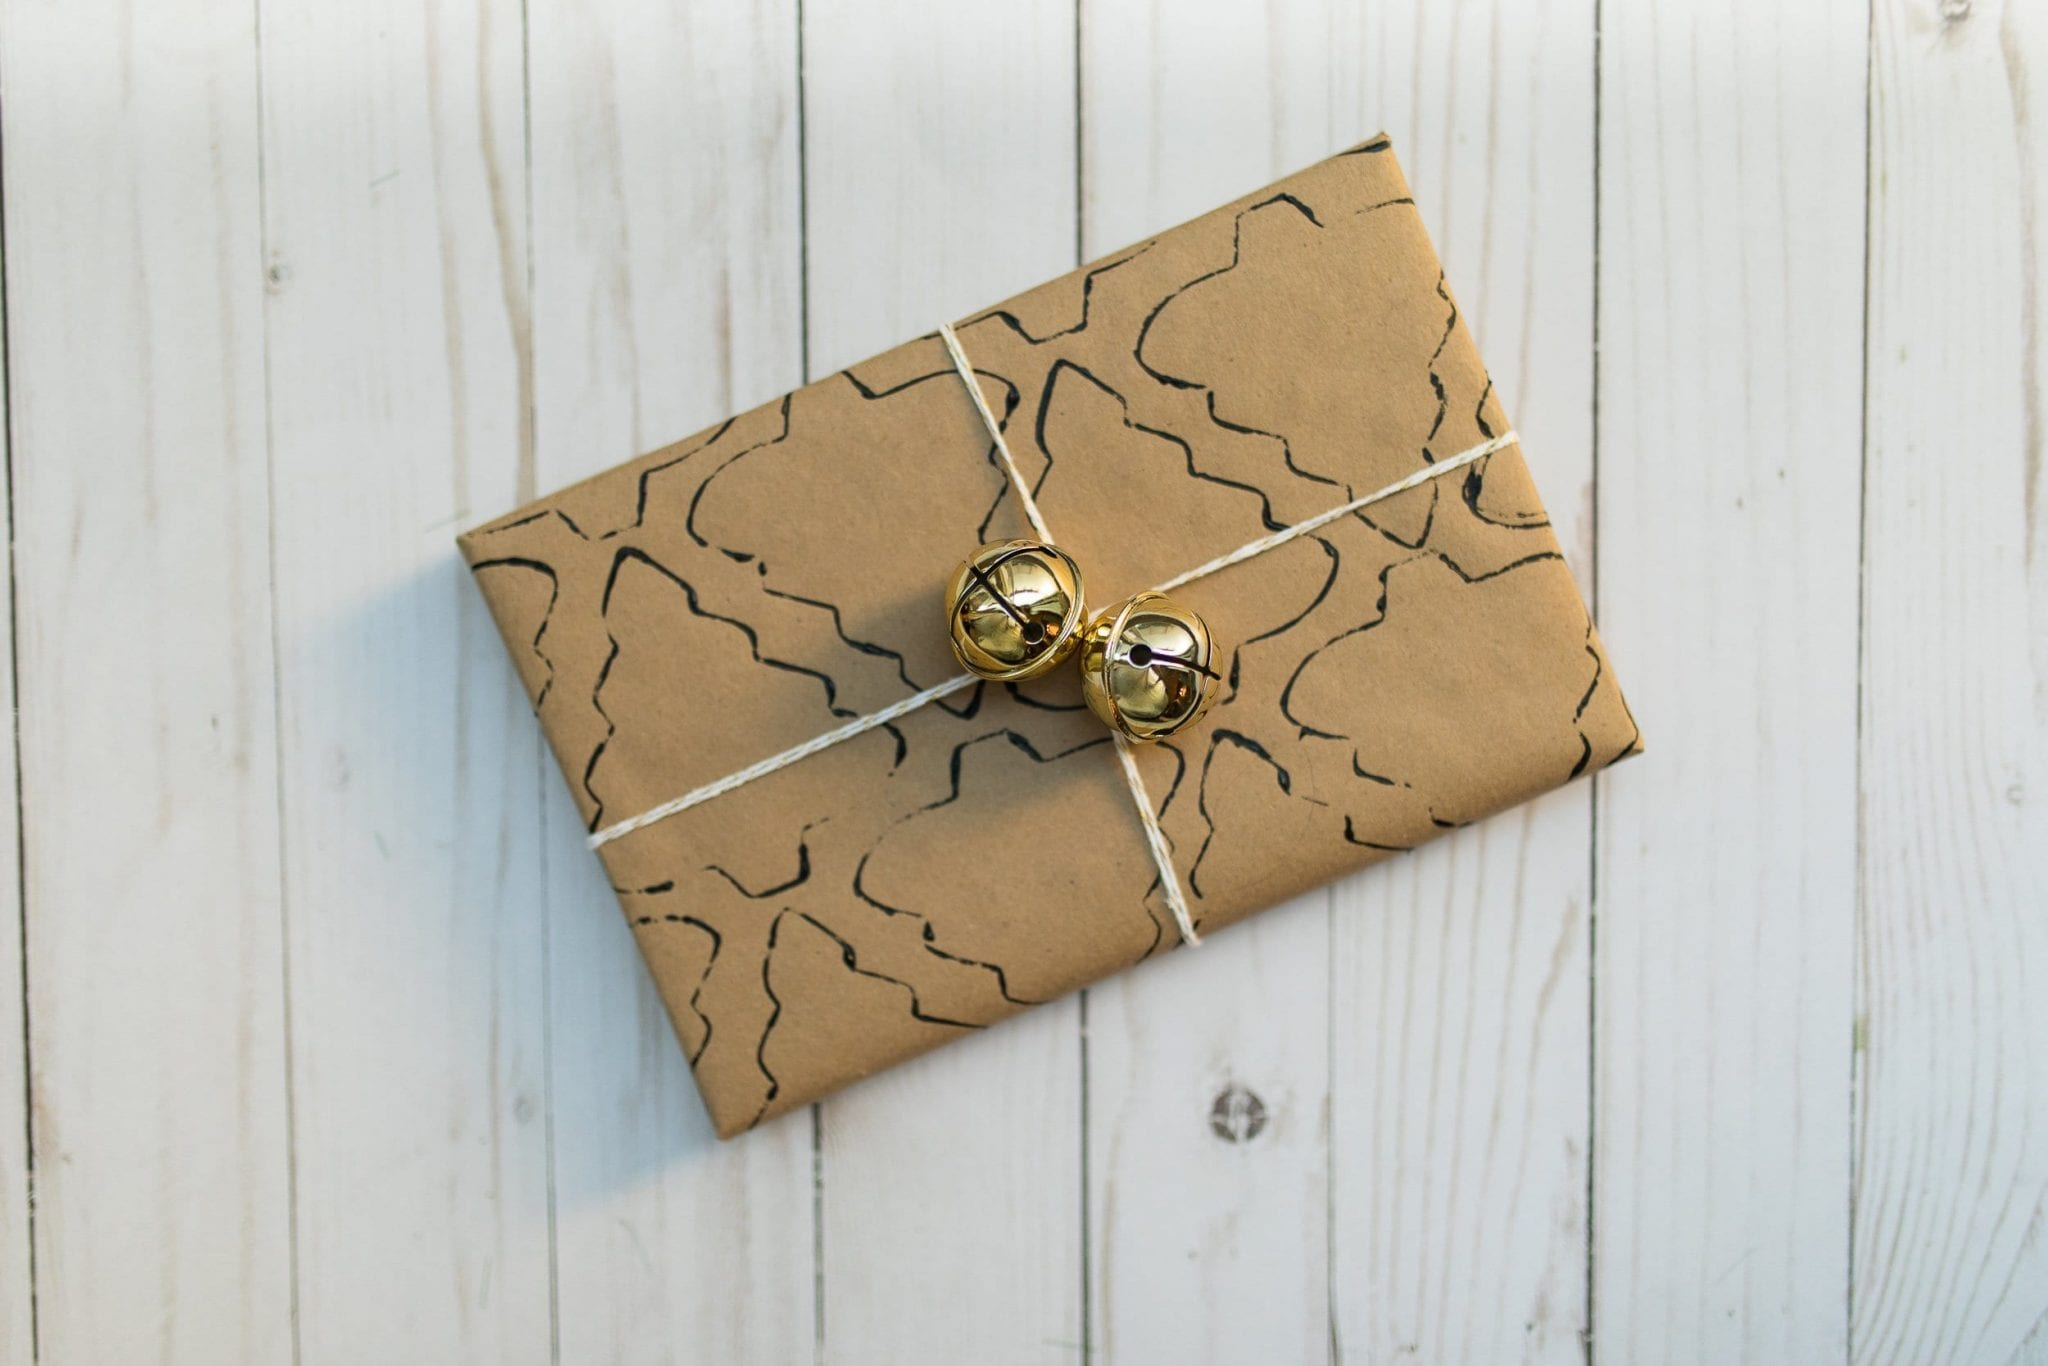 gift wrapping ideas for christmas | gift wrapping ideas creative | gift wrapping ideas brown paper | gift wrapping ideas brown paper christmas | holiday gift wrap ideas christmas | never skip brunch by cara newhart #decor #christmas #holiday #giftwrap